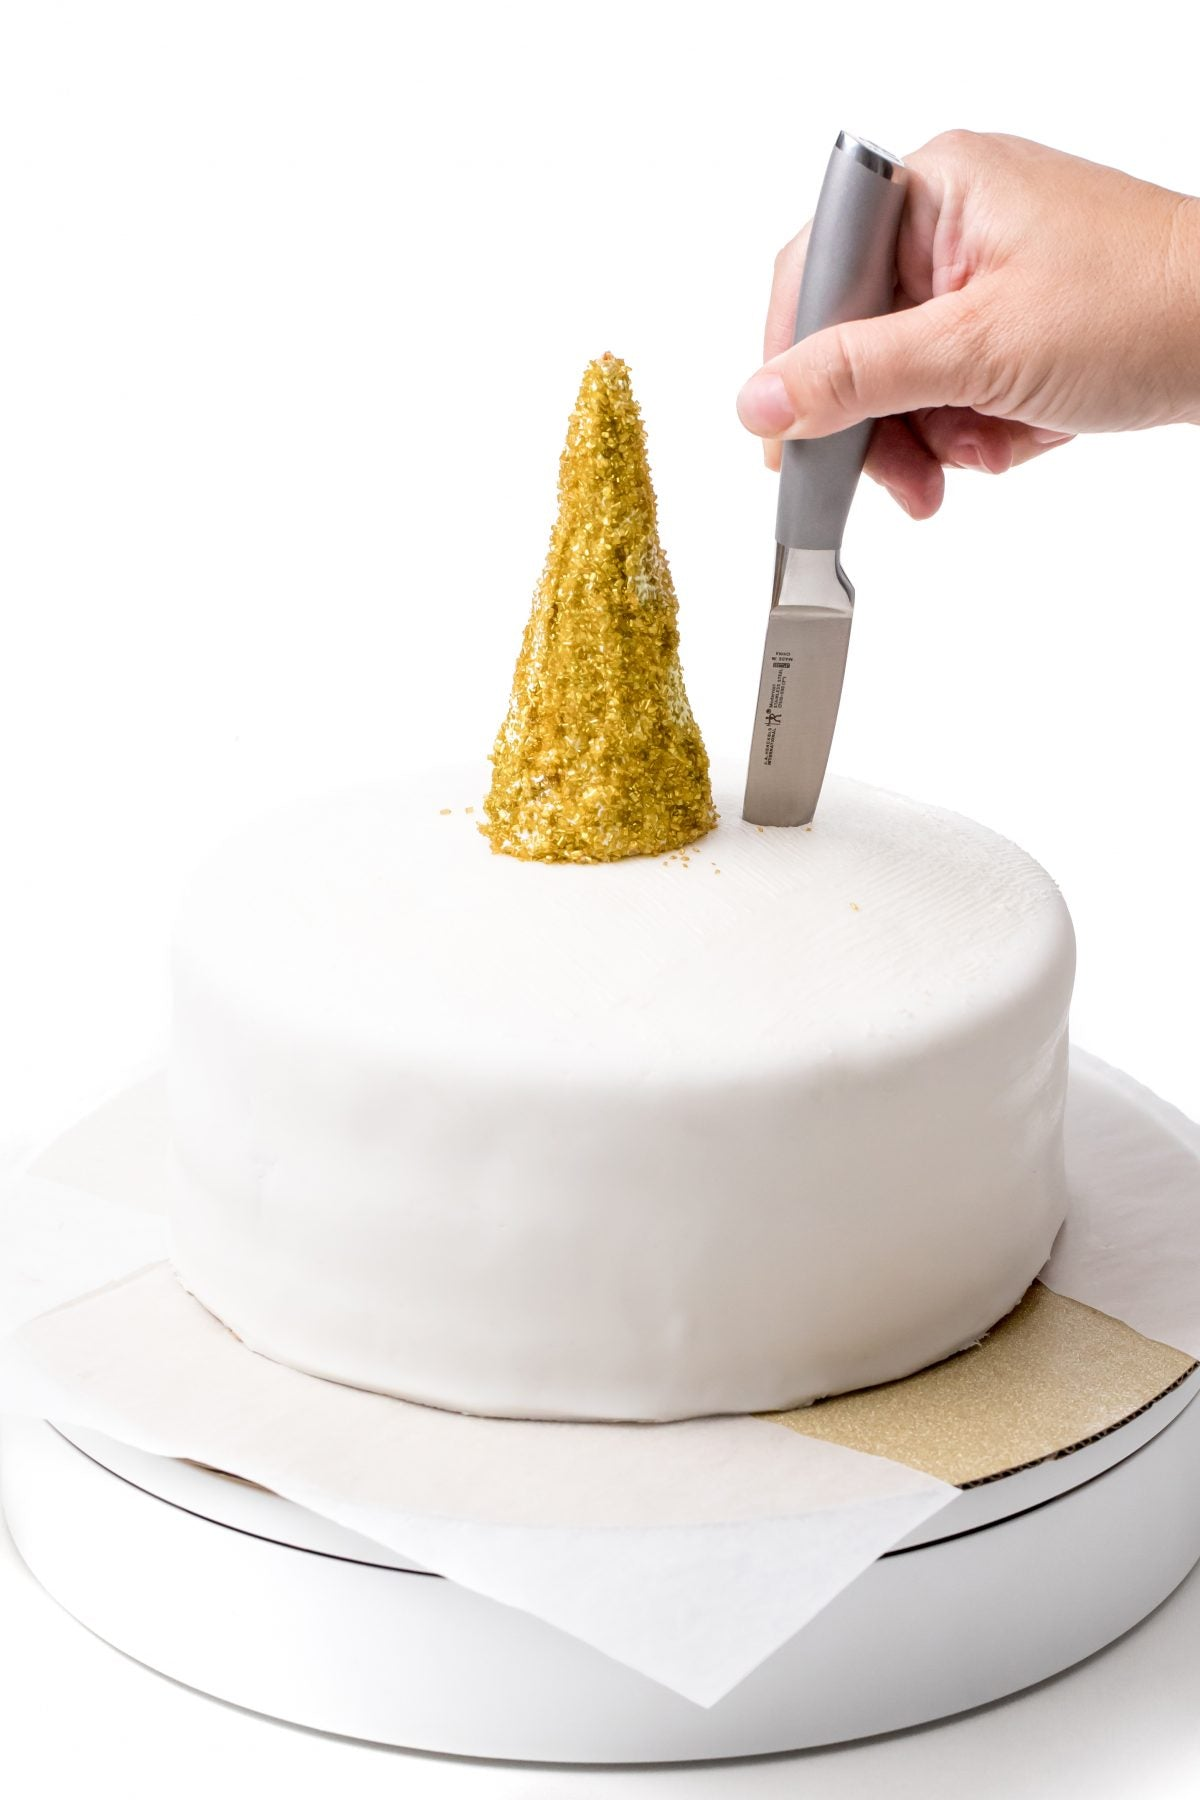 PLACE THE HORN ON THE CAKE AND CUT THE EAR SLOTS